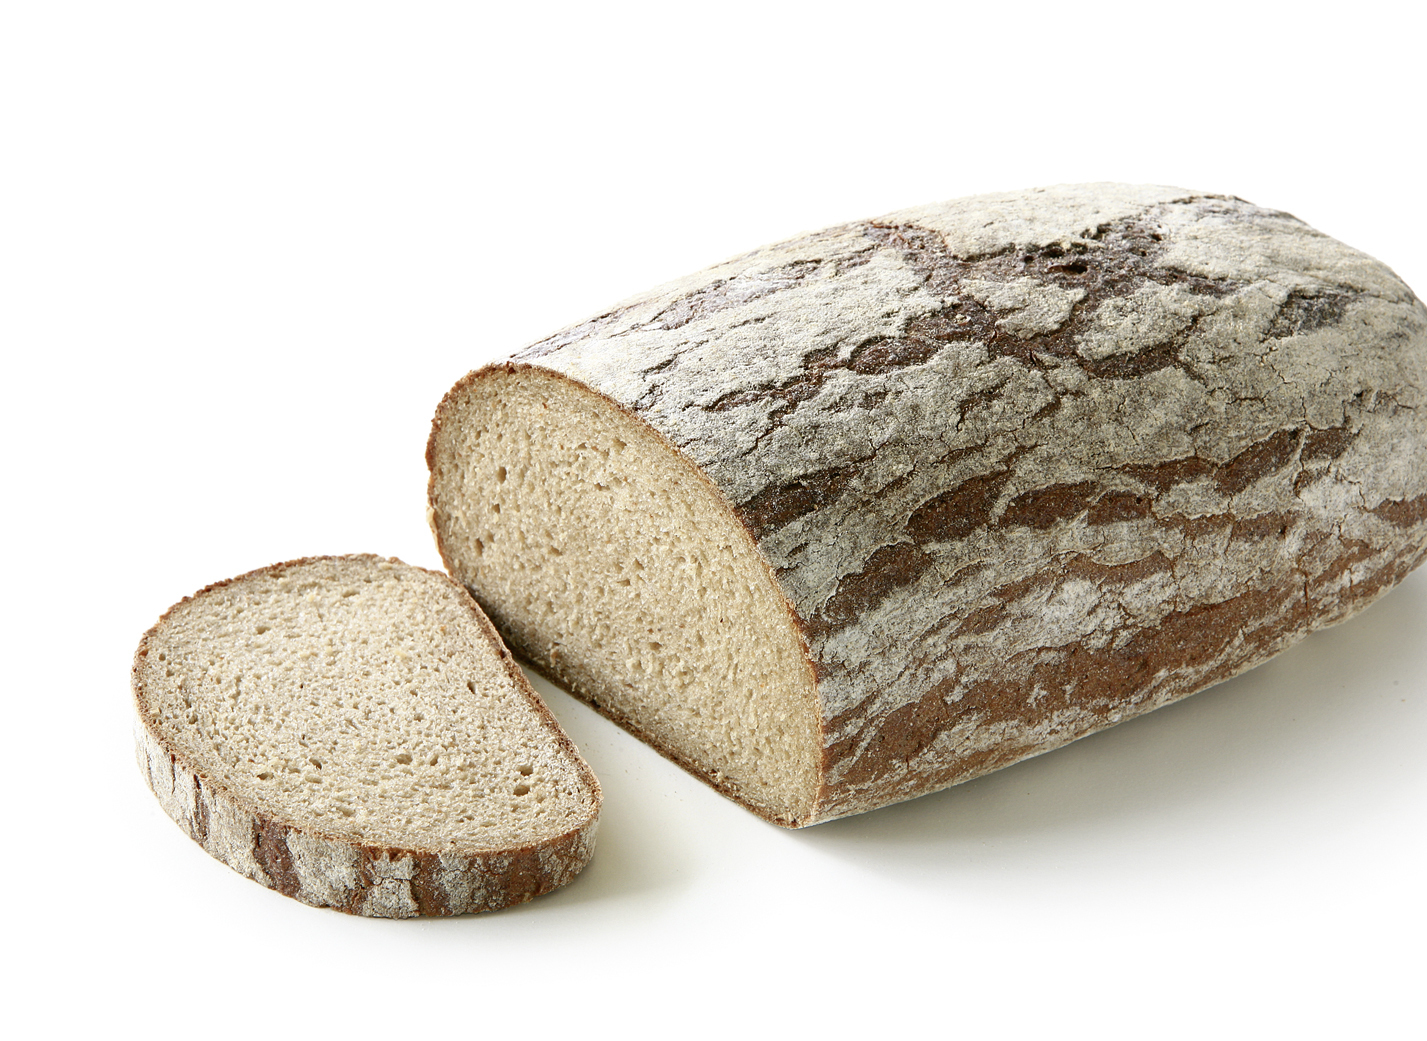 Country Bread - Rye mixed bread shaped oval with 31% rye flour length: 29 cm